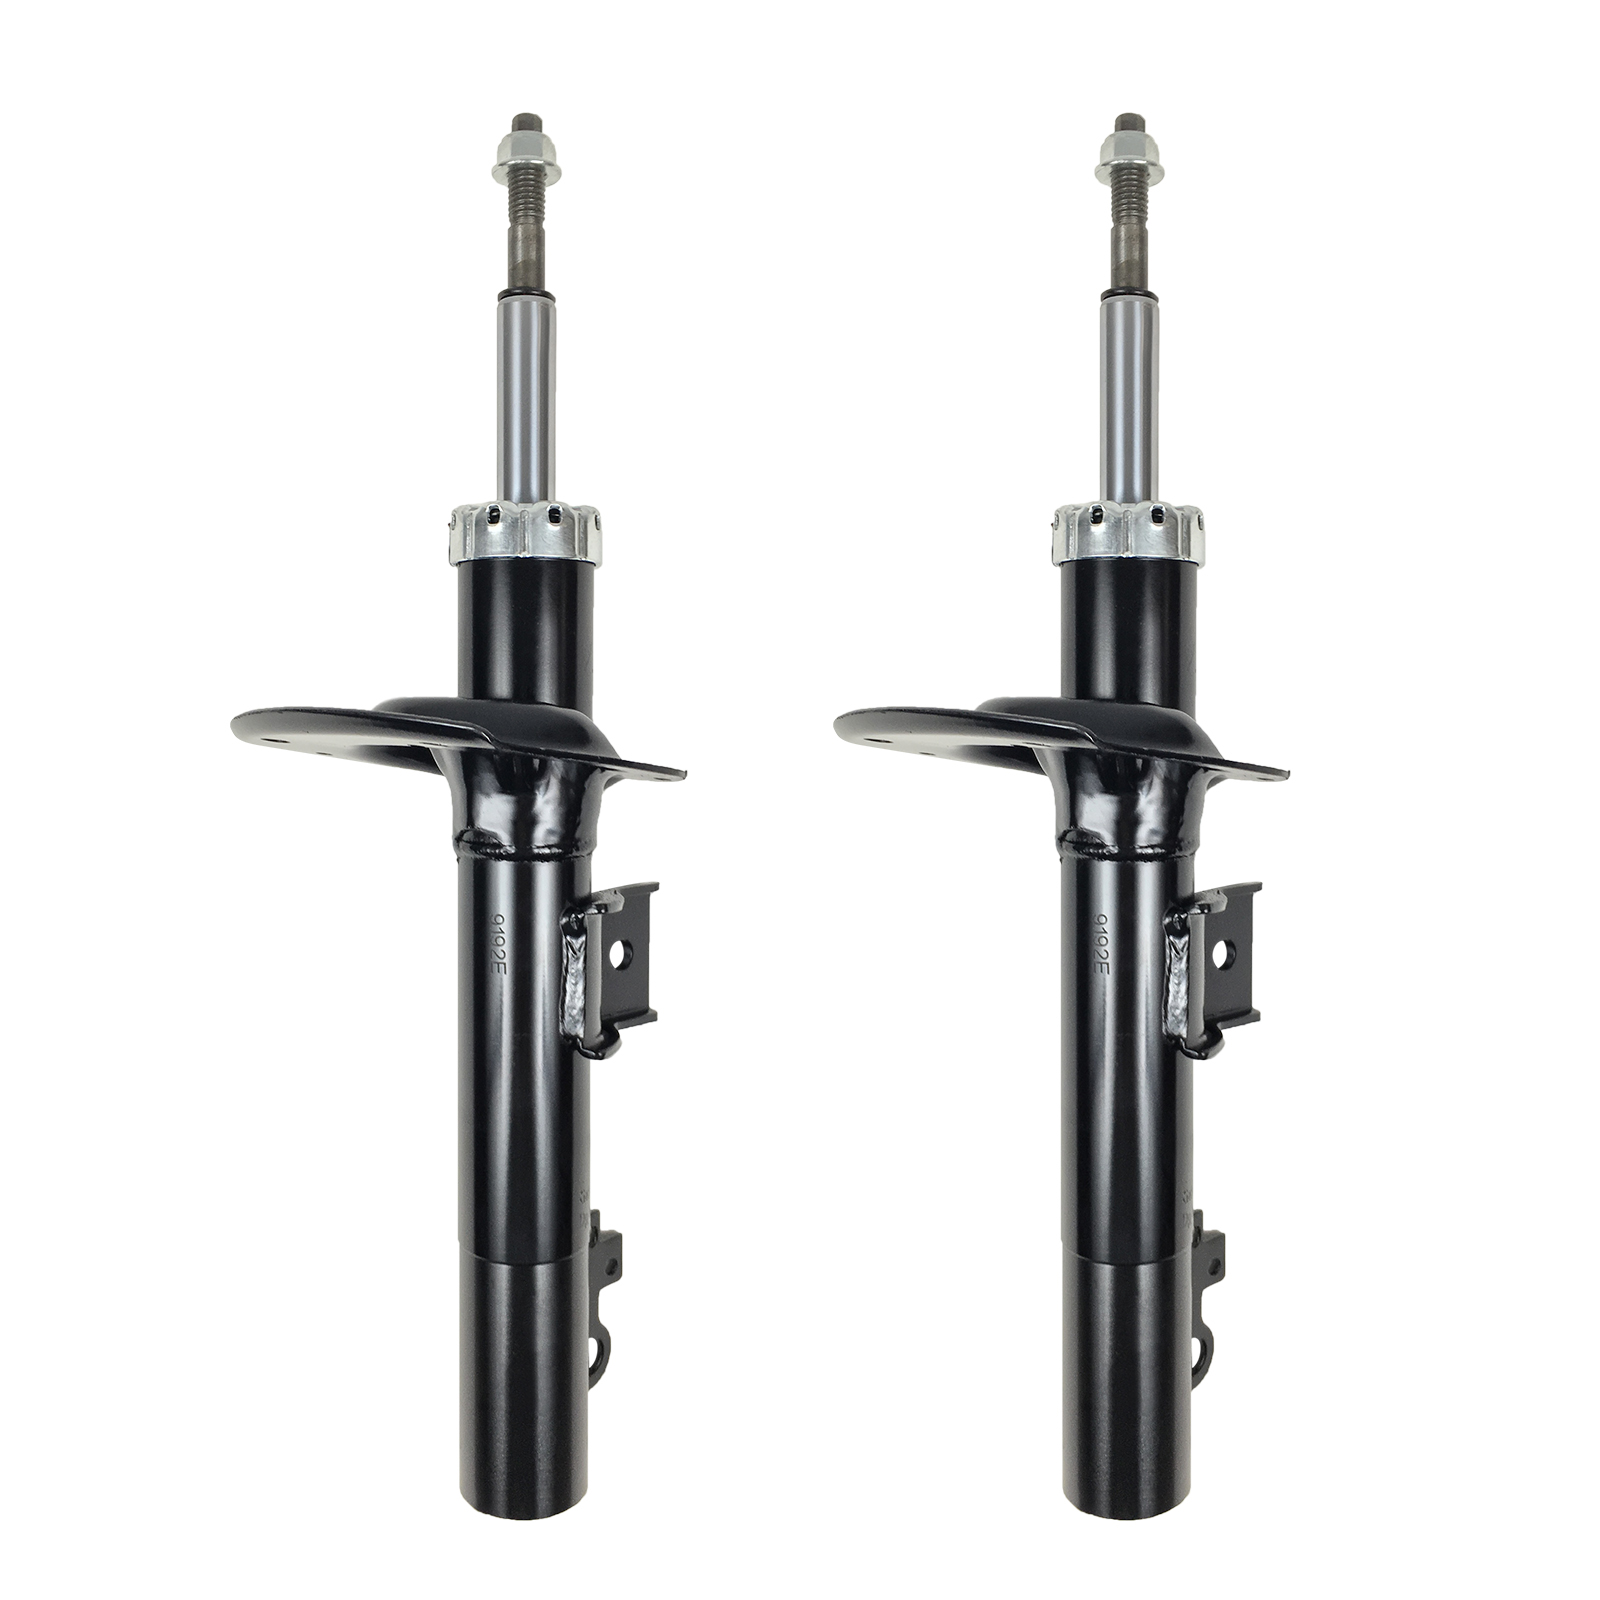 Front Pair Shocks & Struts Absorber For 1996-2007 Ford Taurus 1996-2005 Mercury Sable 71615 71615Front Pair Shocks & Struts Absorber For 1996-2007 Ford Taurus 1996-2005 Mercury Sable 71615 71615